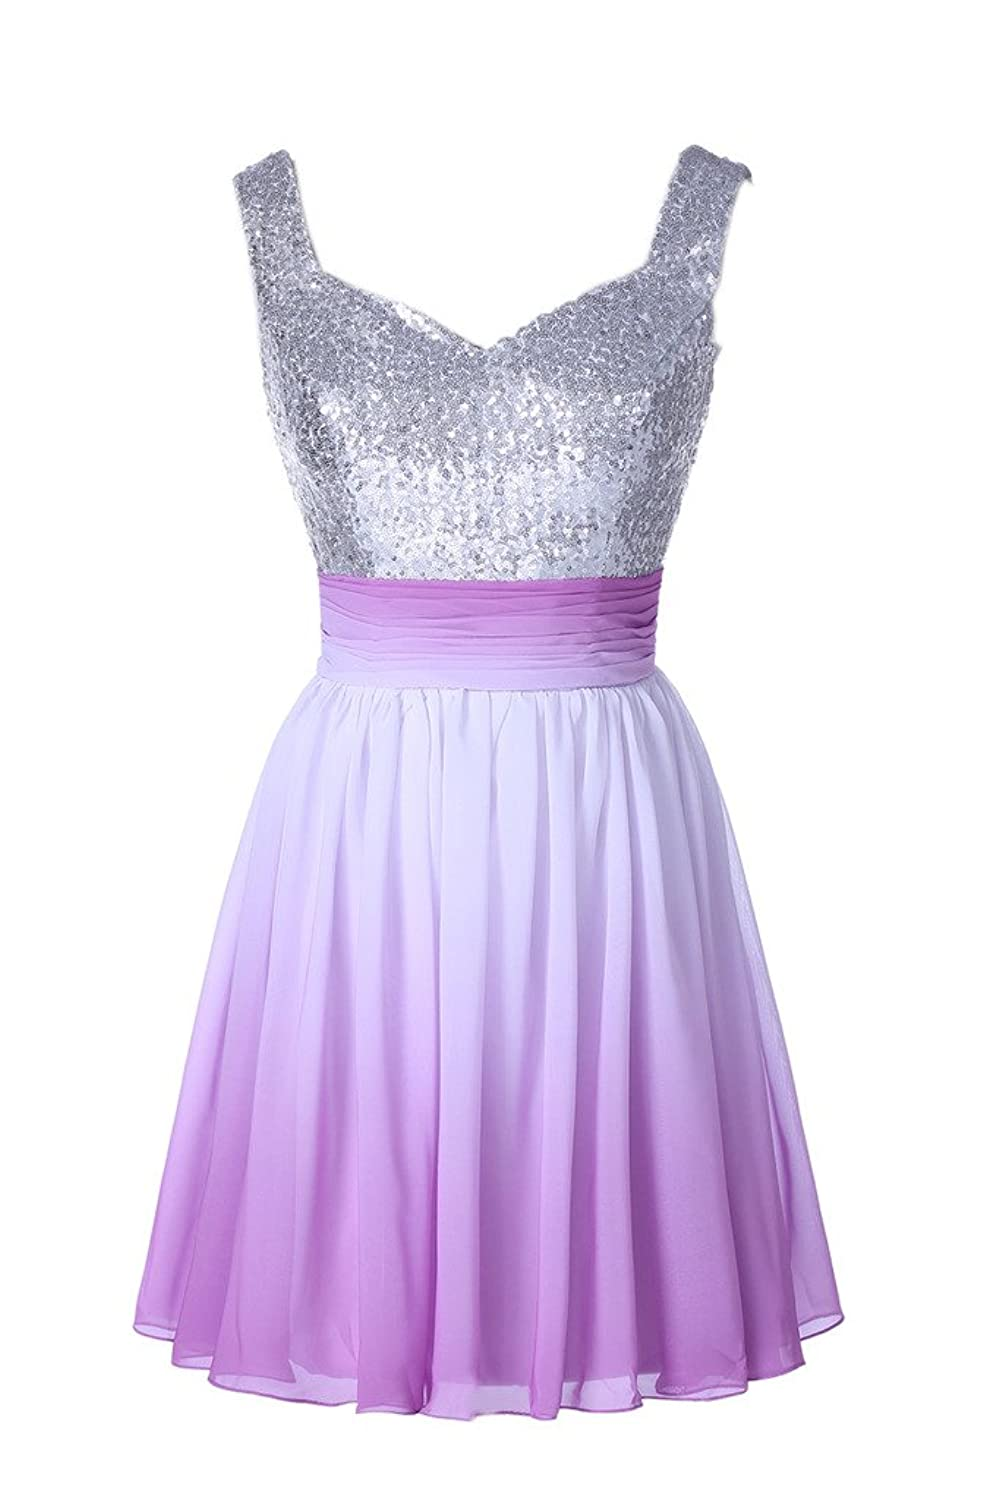 Gorgeous Bride Stunning Sequins Short Chiffon Homecoming Prom Party Dress Hot New